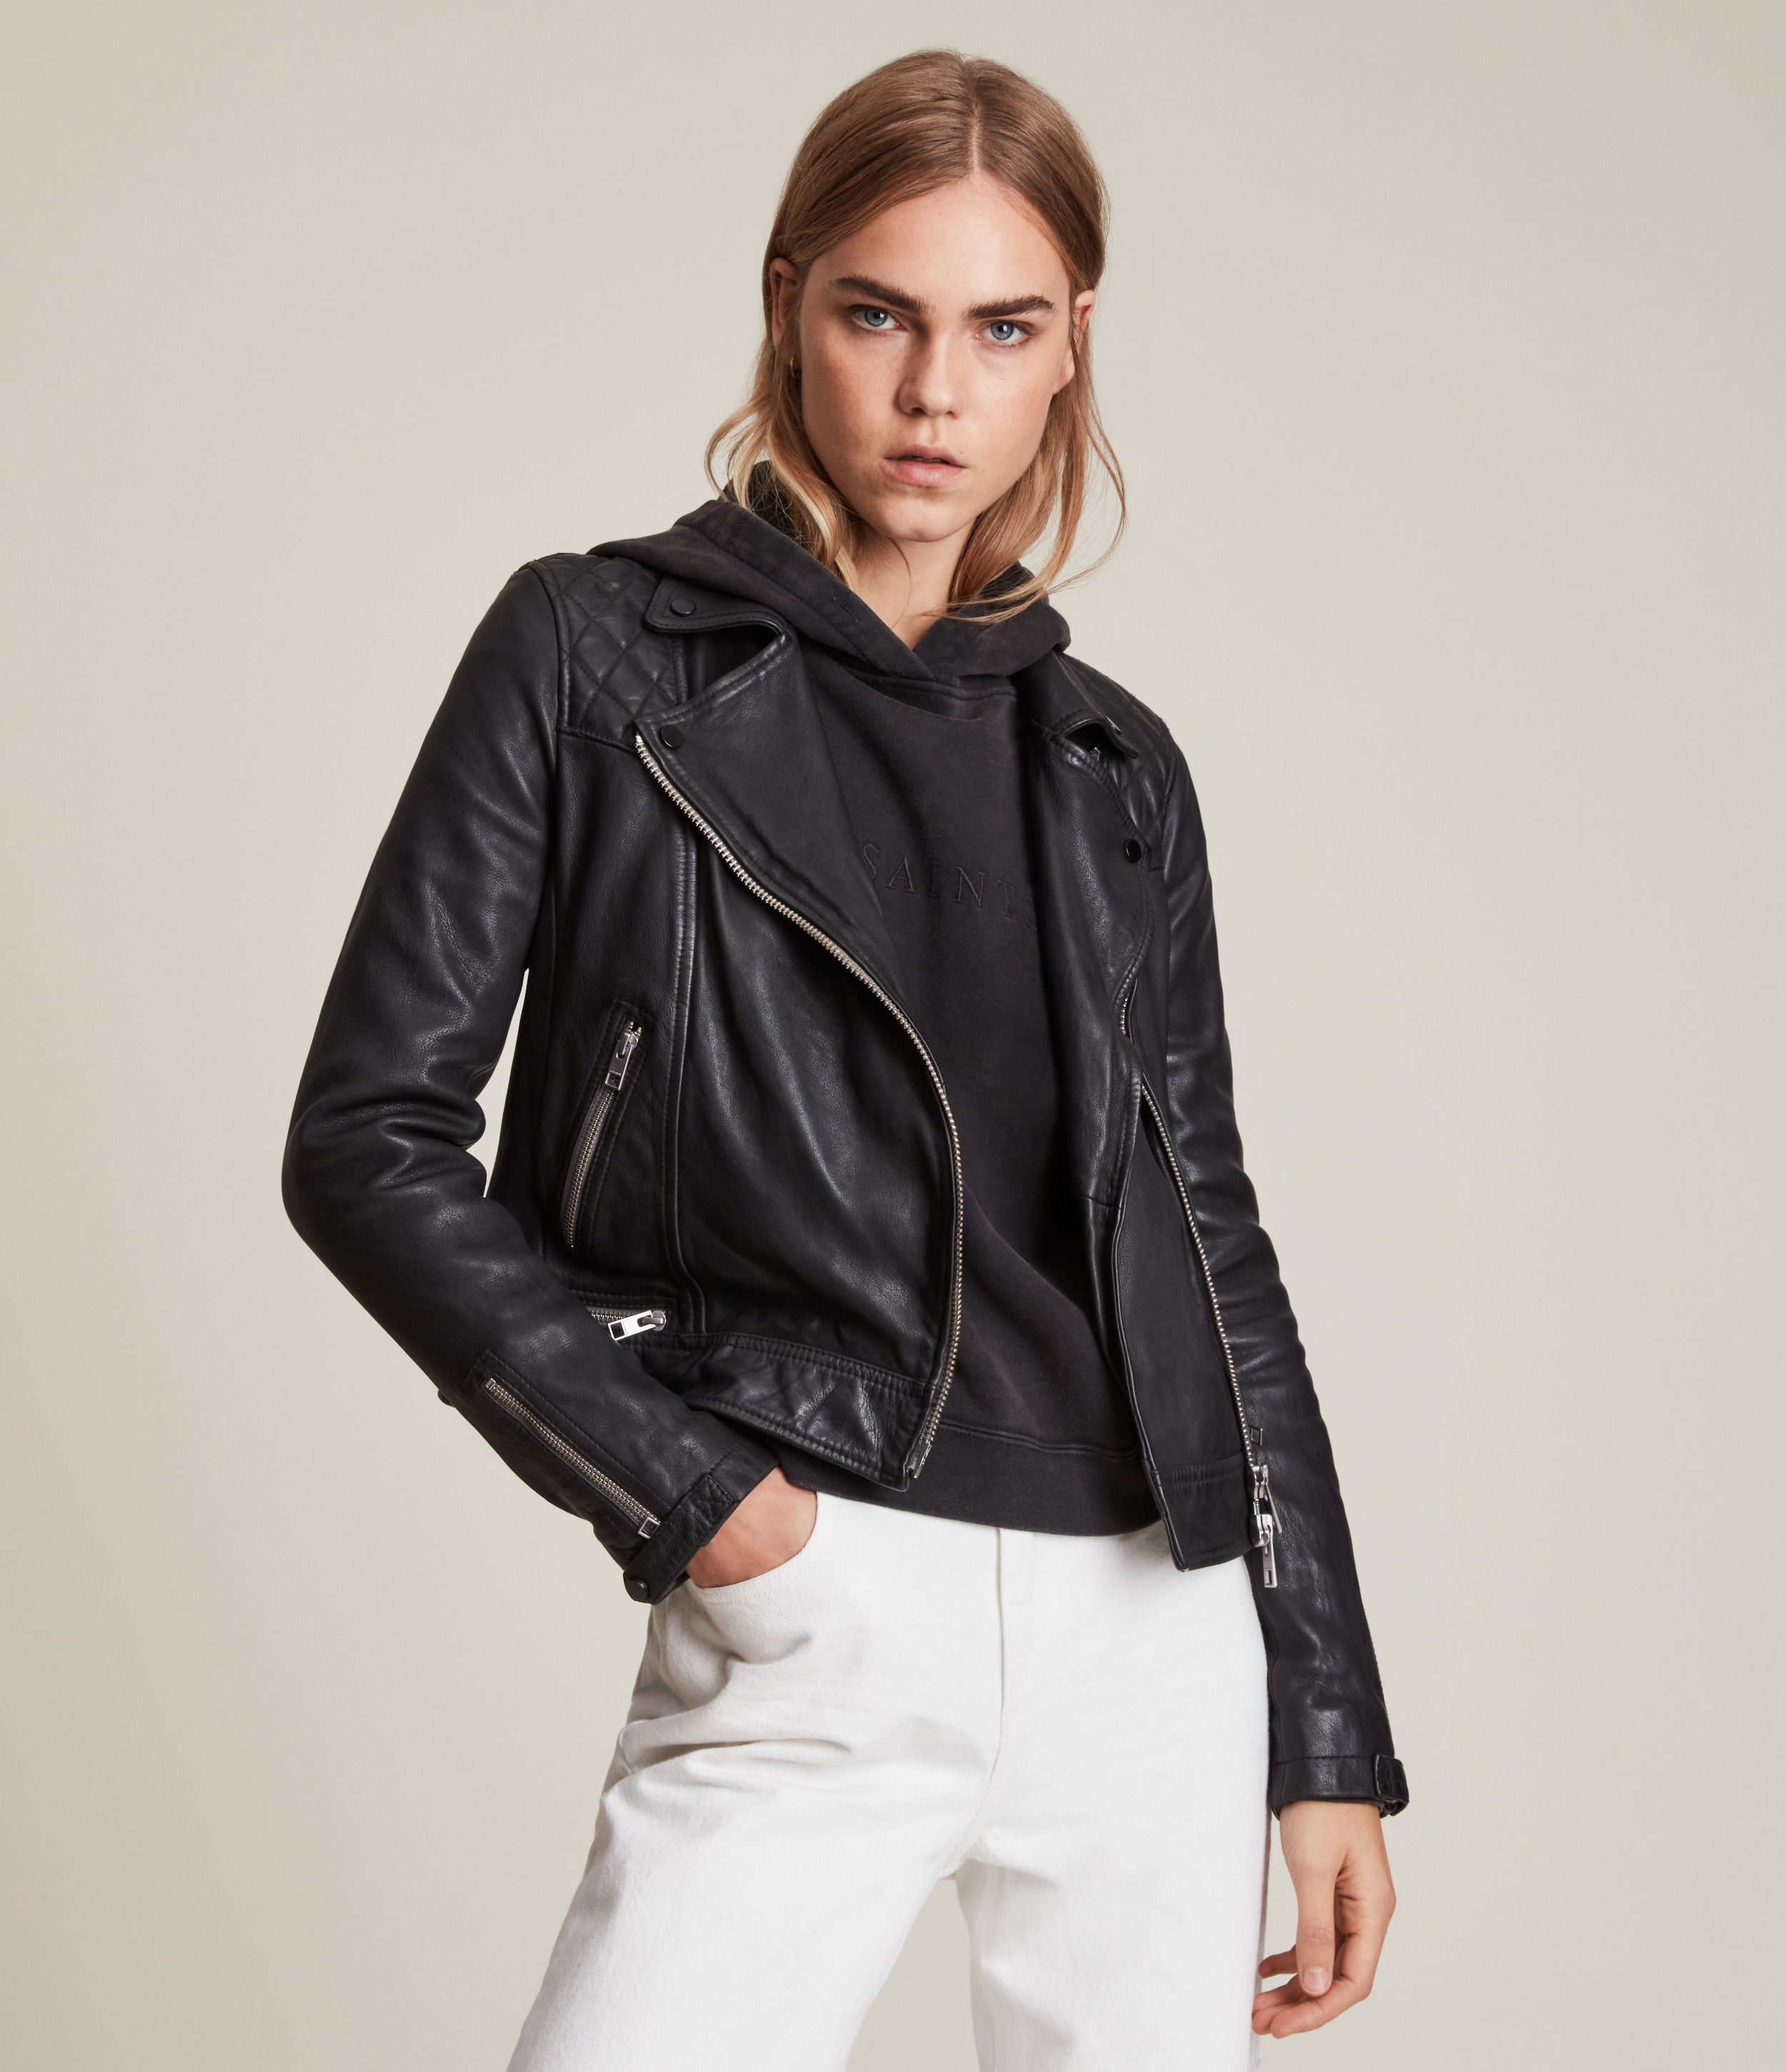 AllSaints Women's Leather Regular Fit Quilted Traditional Conroy Biker Jacket, Black, Size: 4